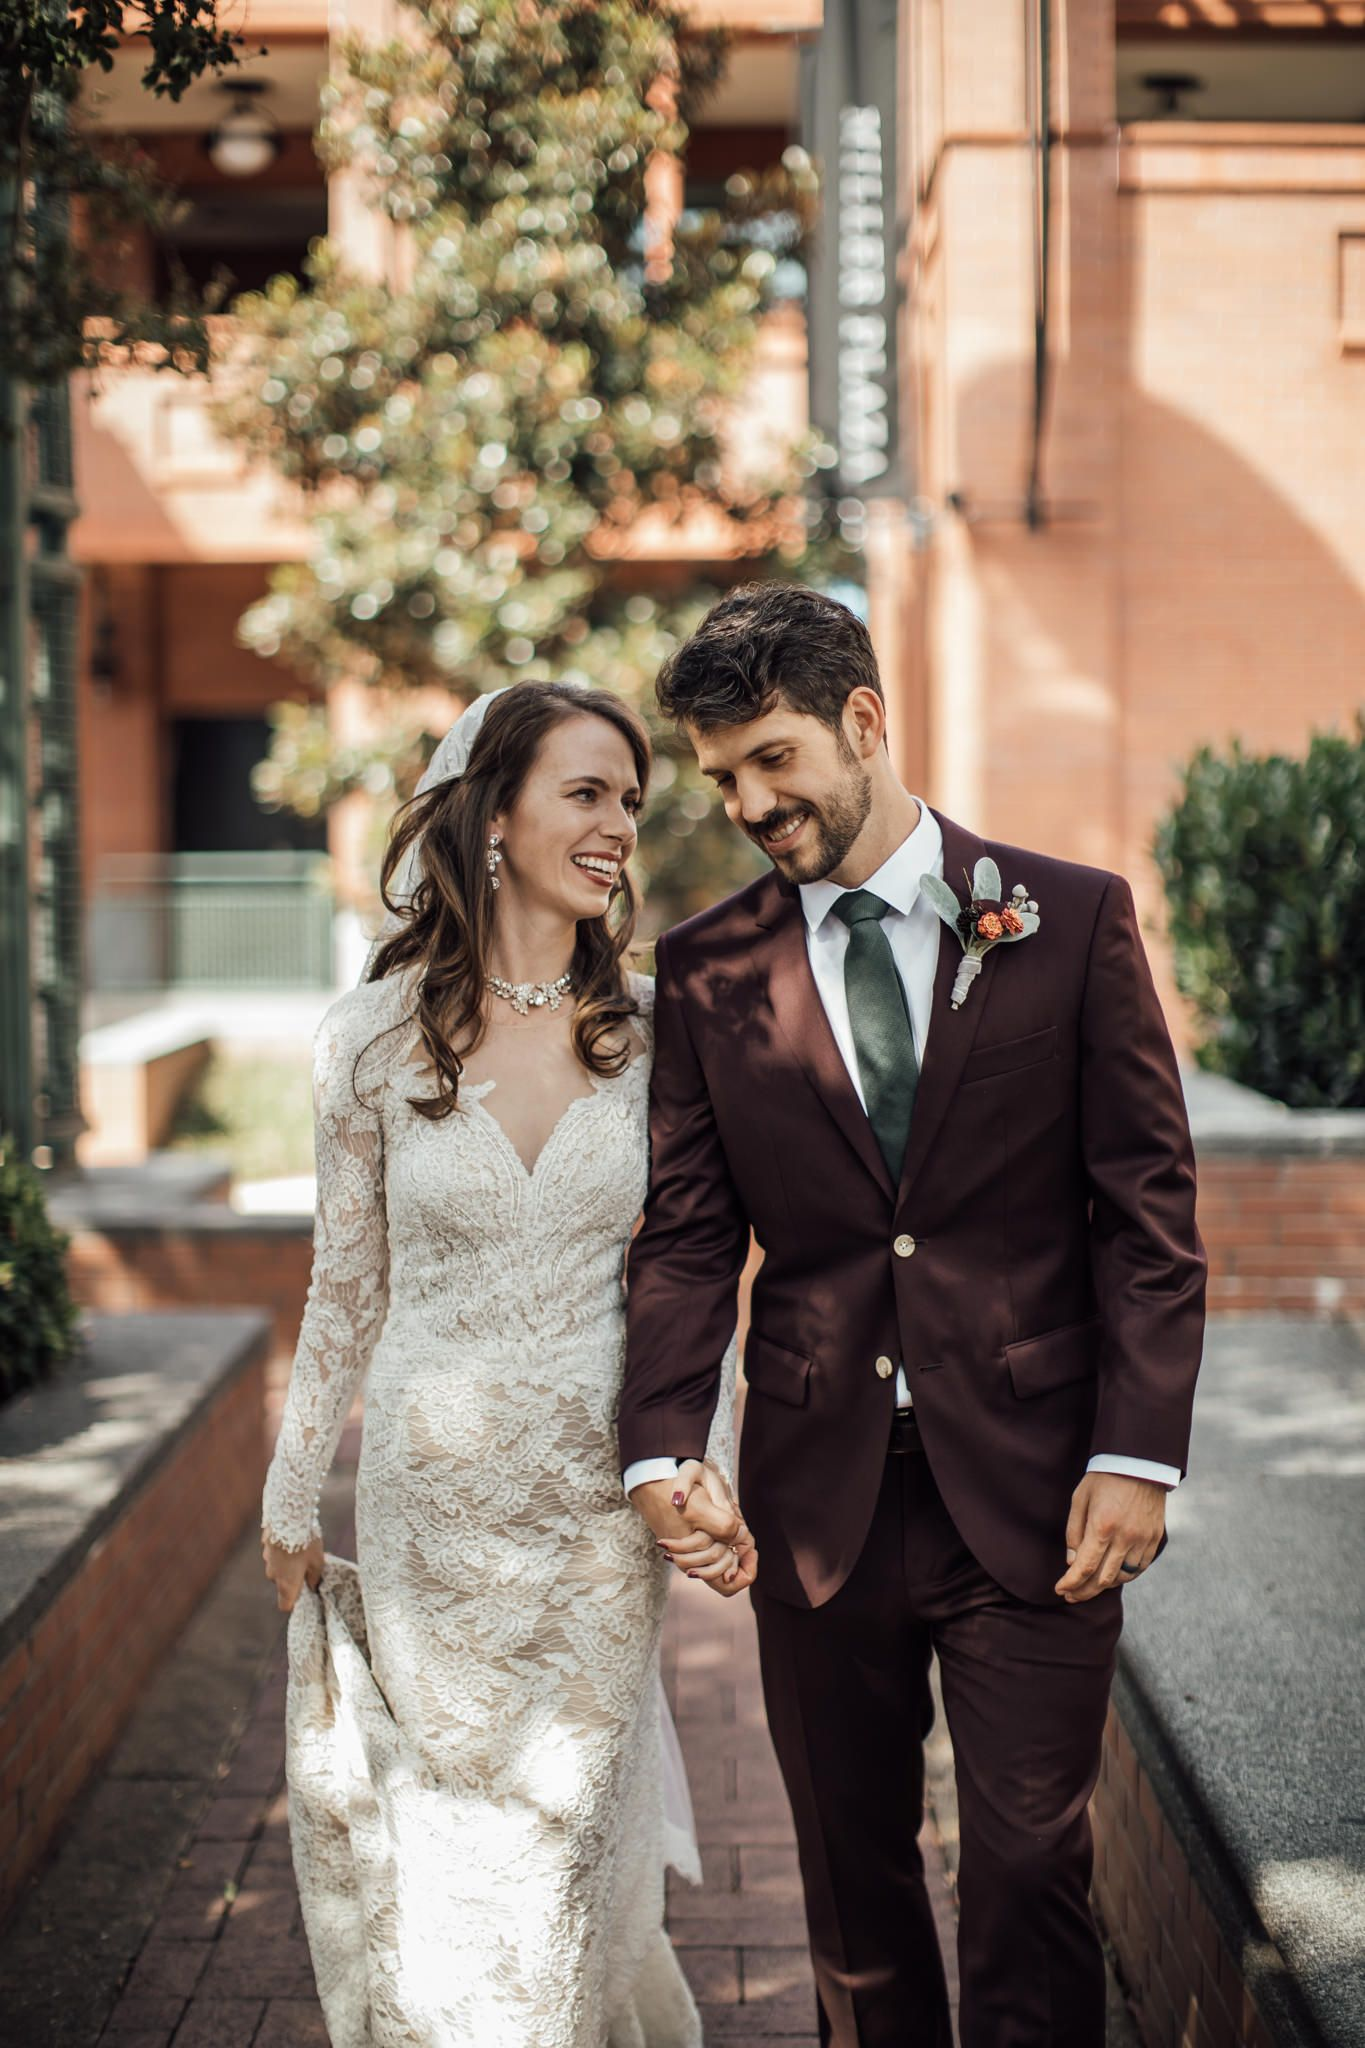 A Unique and AdventureInspired Wedding at The Waterhouse Pavilion